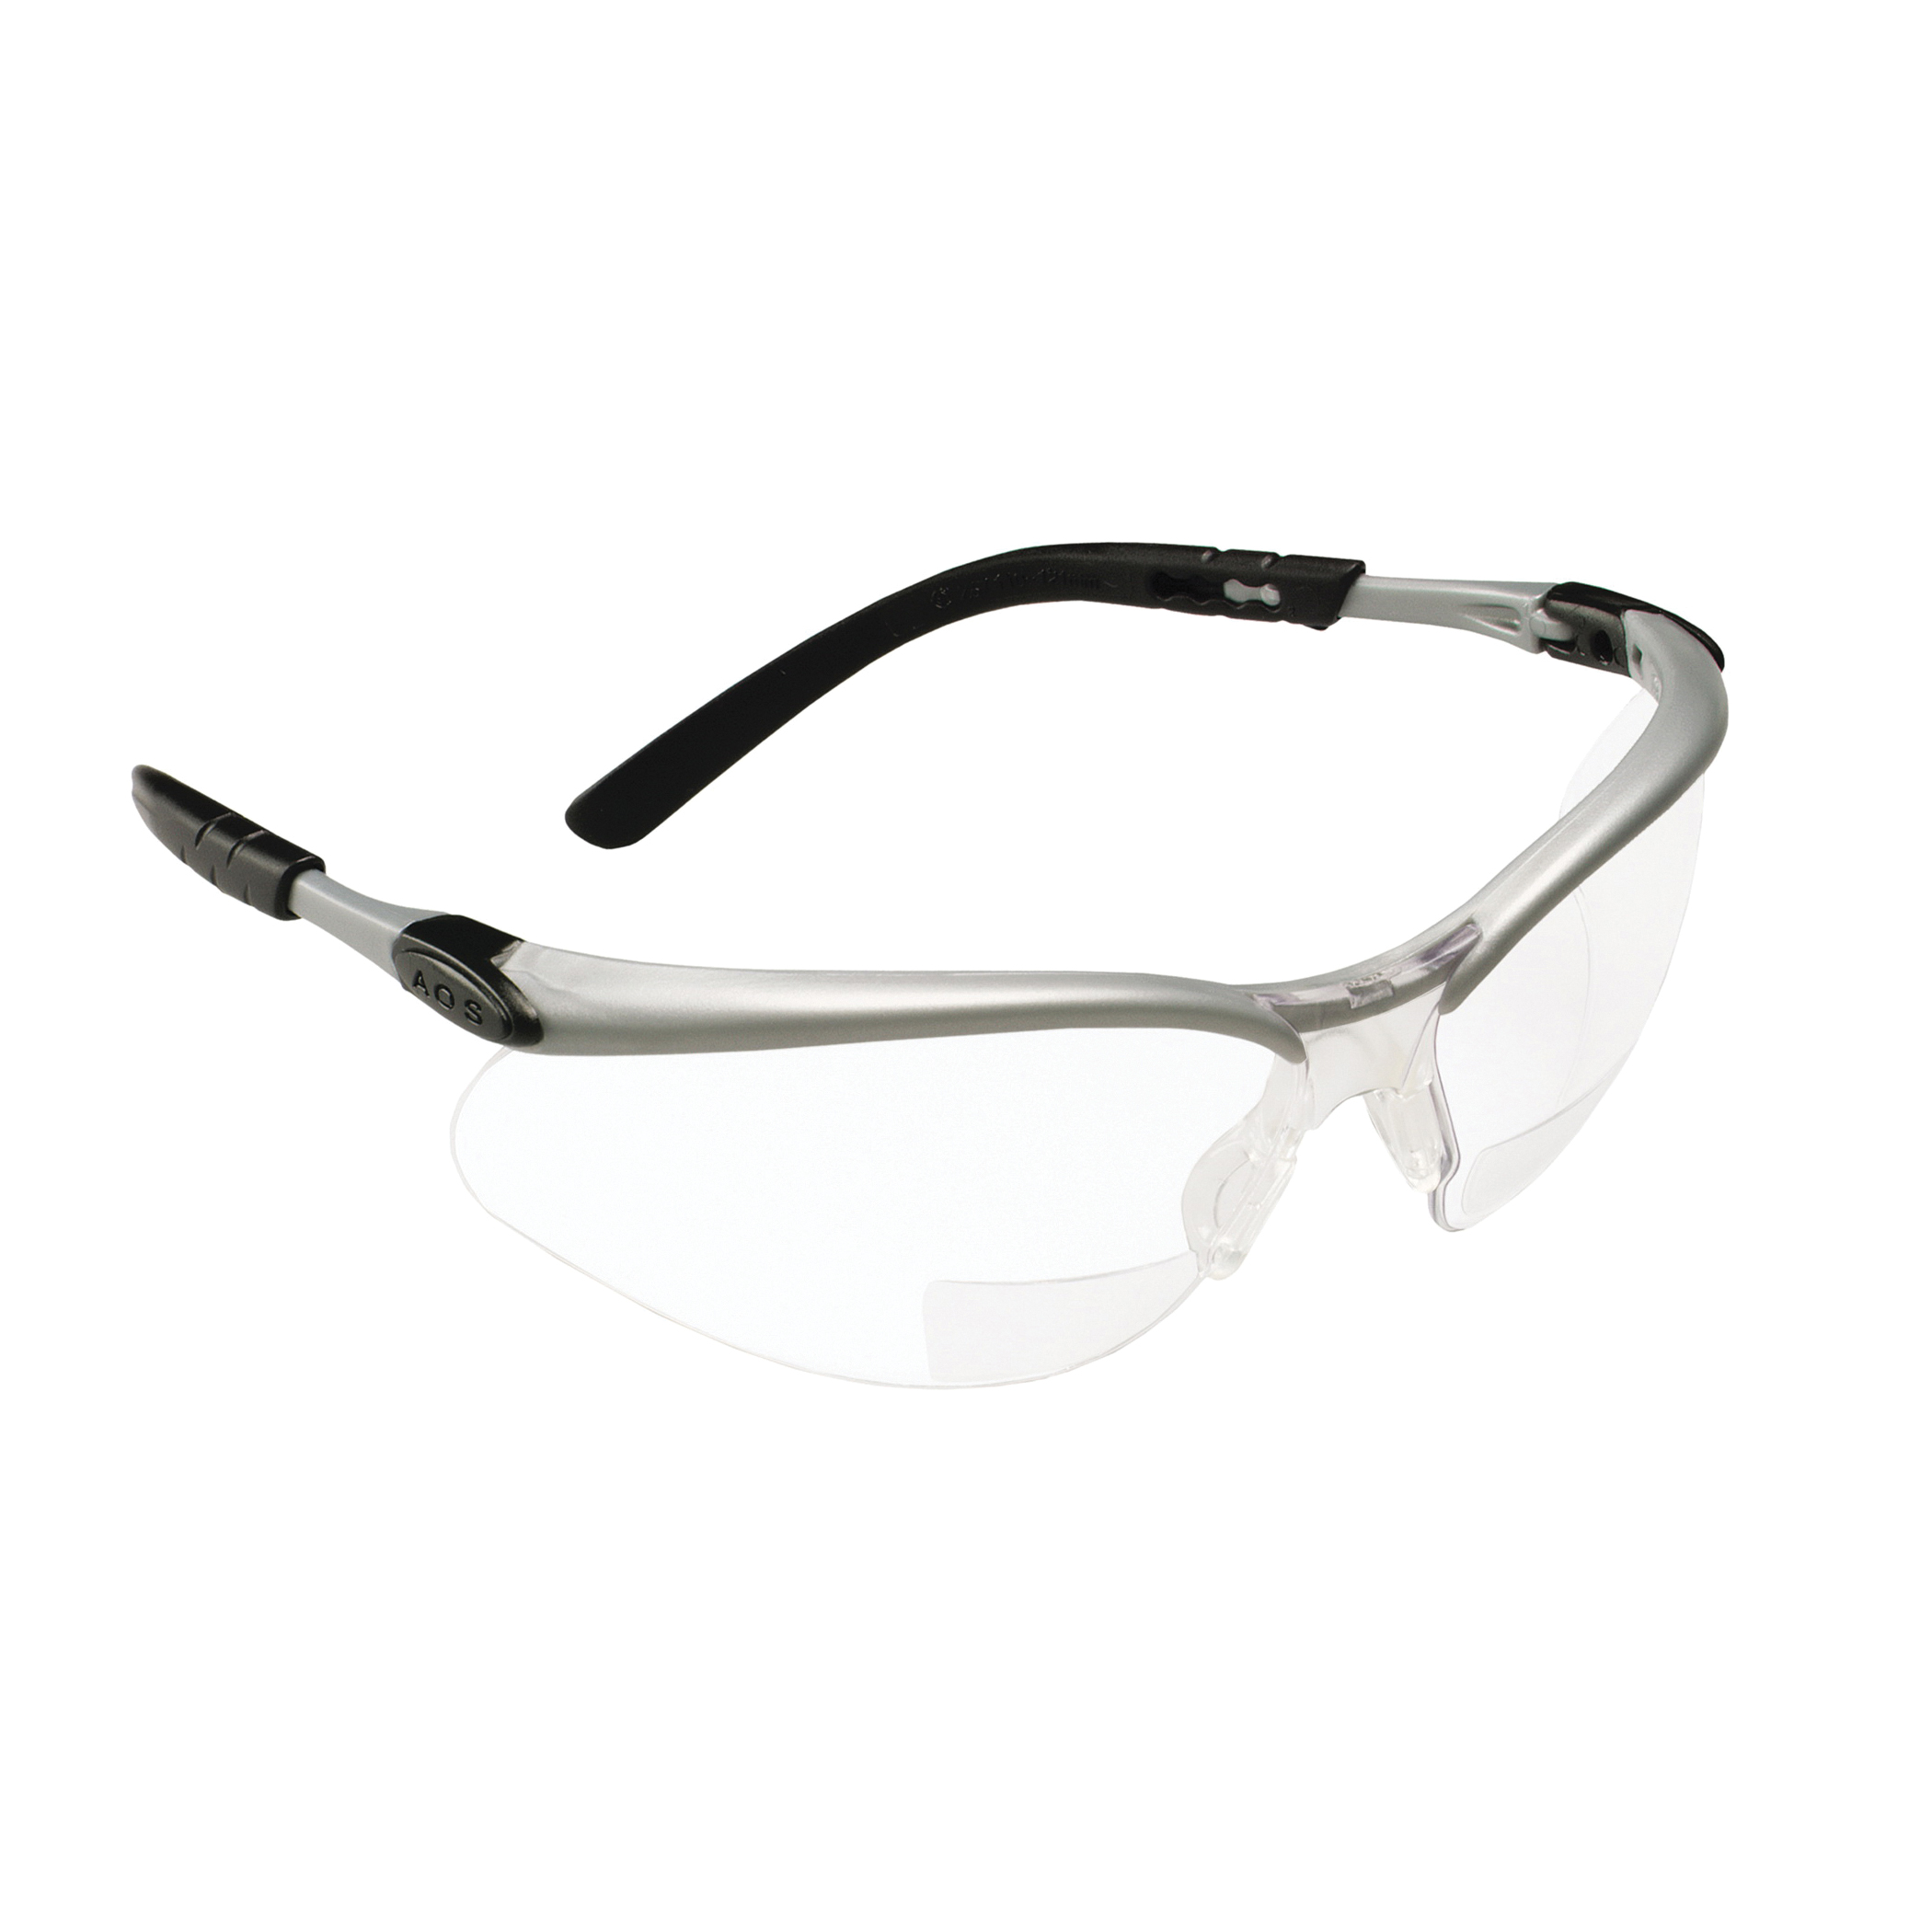 3M™ BX™ 078371-62047 11375-00000-20 Bi-Focal Lens Lightweight Reader Protective Eyewear, 2 Diopter, Clear Lens, Black/Silver Plastic Frame, Polycarbonate Lens, 99.9% UV Protection, Specifications Met: ANSI Z87.1-2015, CSA Z94.3-2007